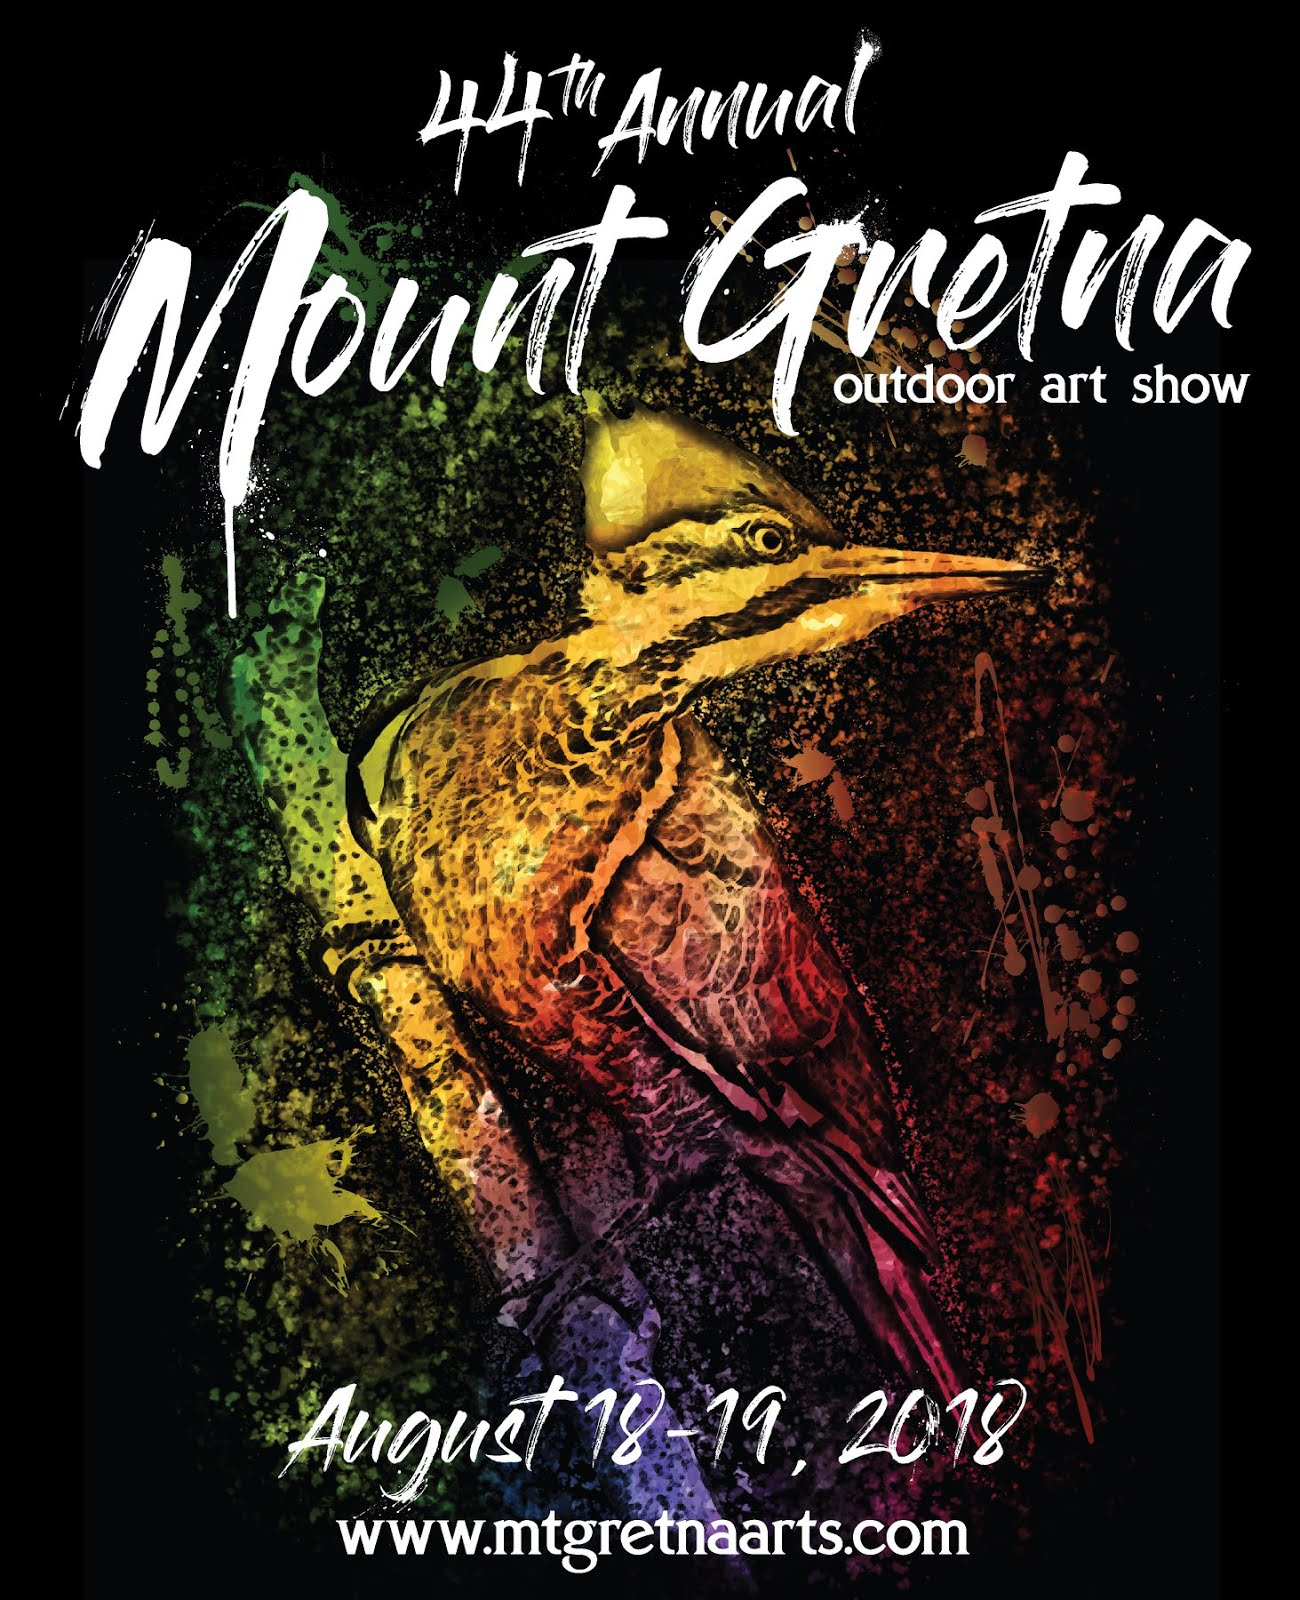 EXHIBITING ARTIST AT MT. GRETNA OUTDOOR ART SHOW 2018